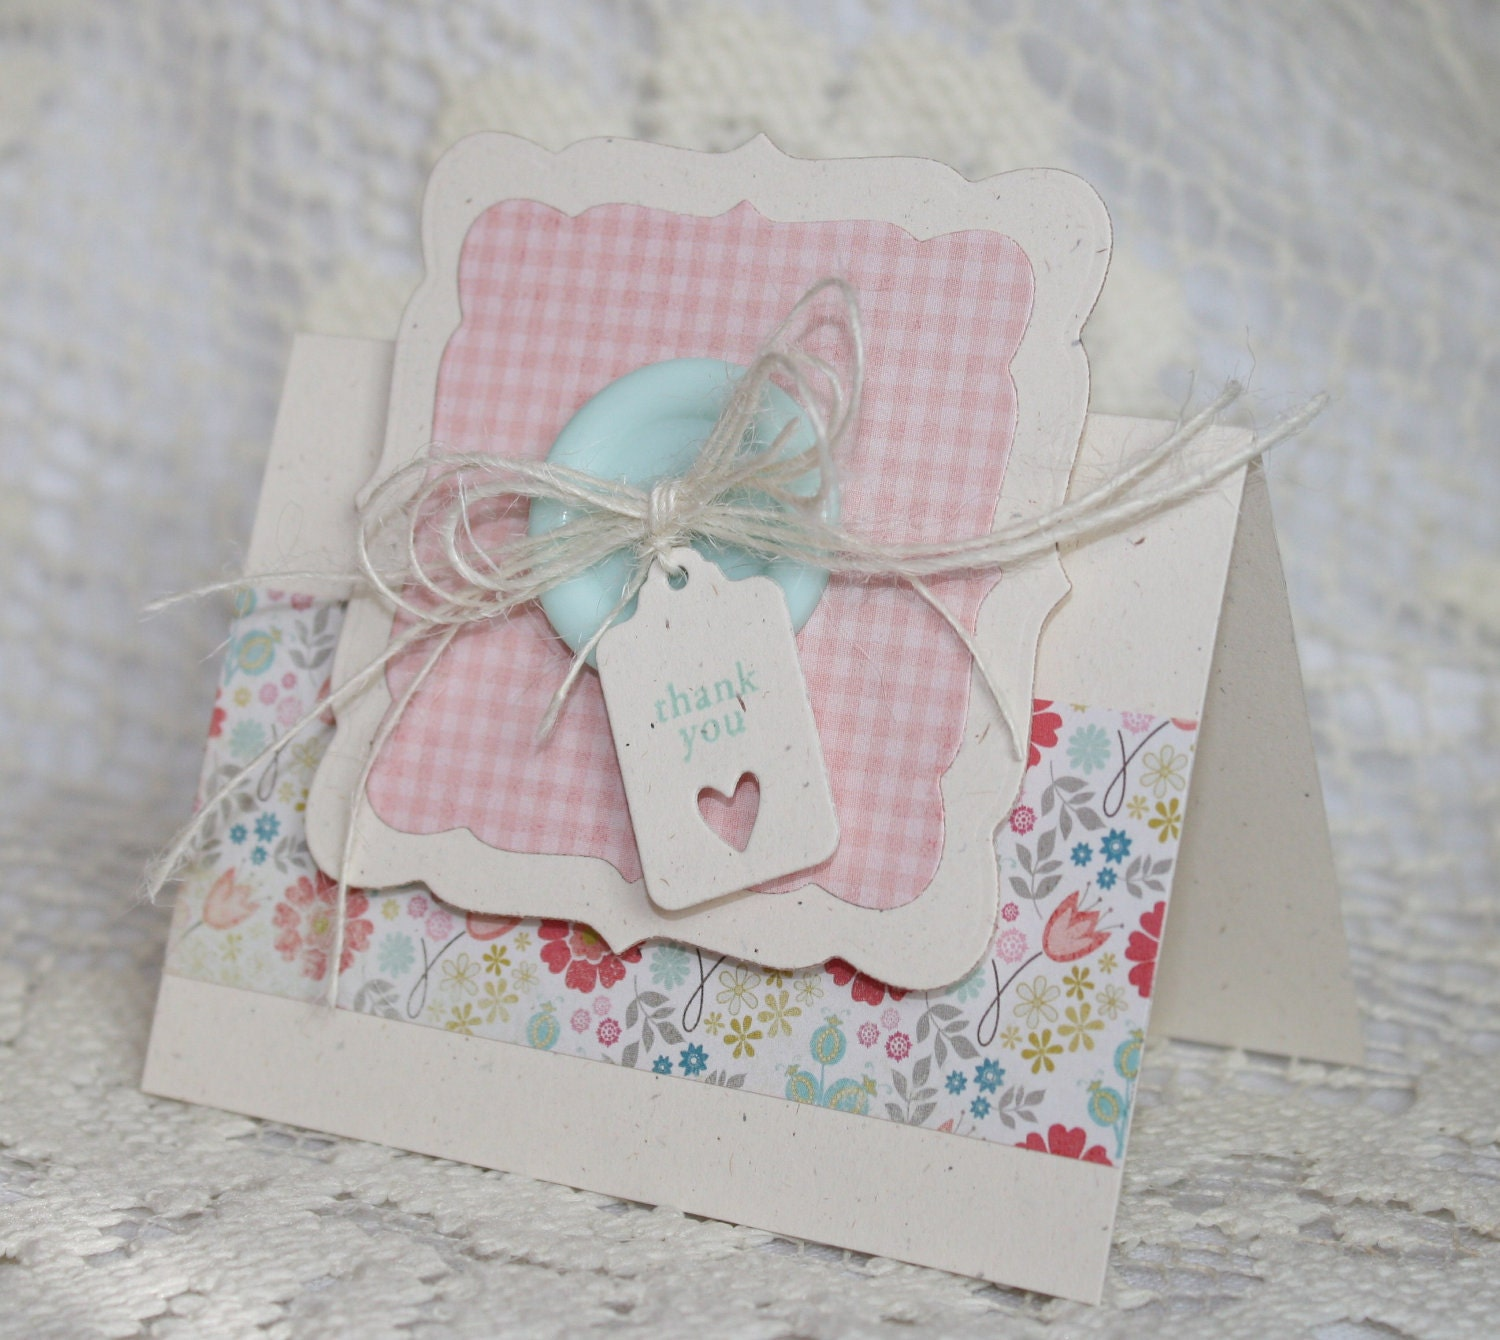 Handmade Thank You Greeting Card by EndlessInkHandmade on Etsy